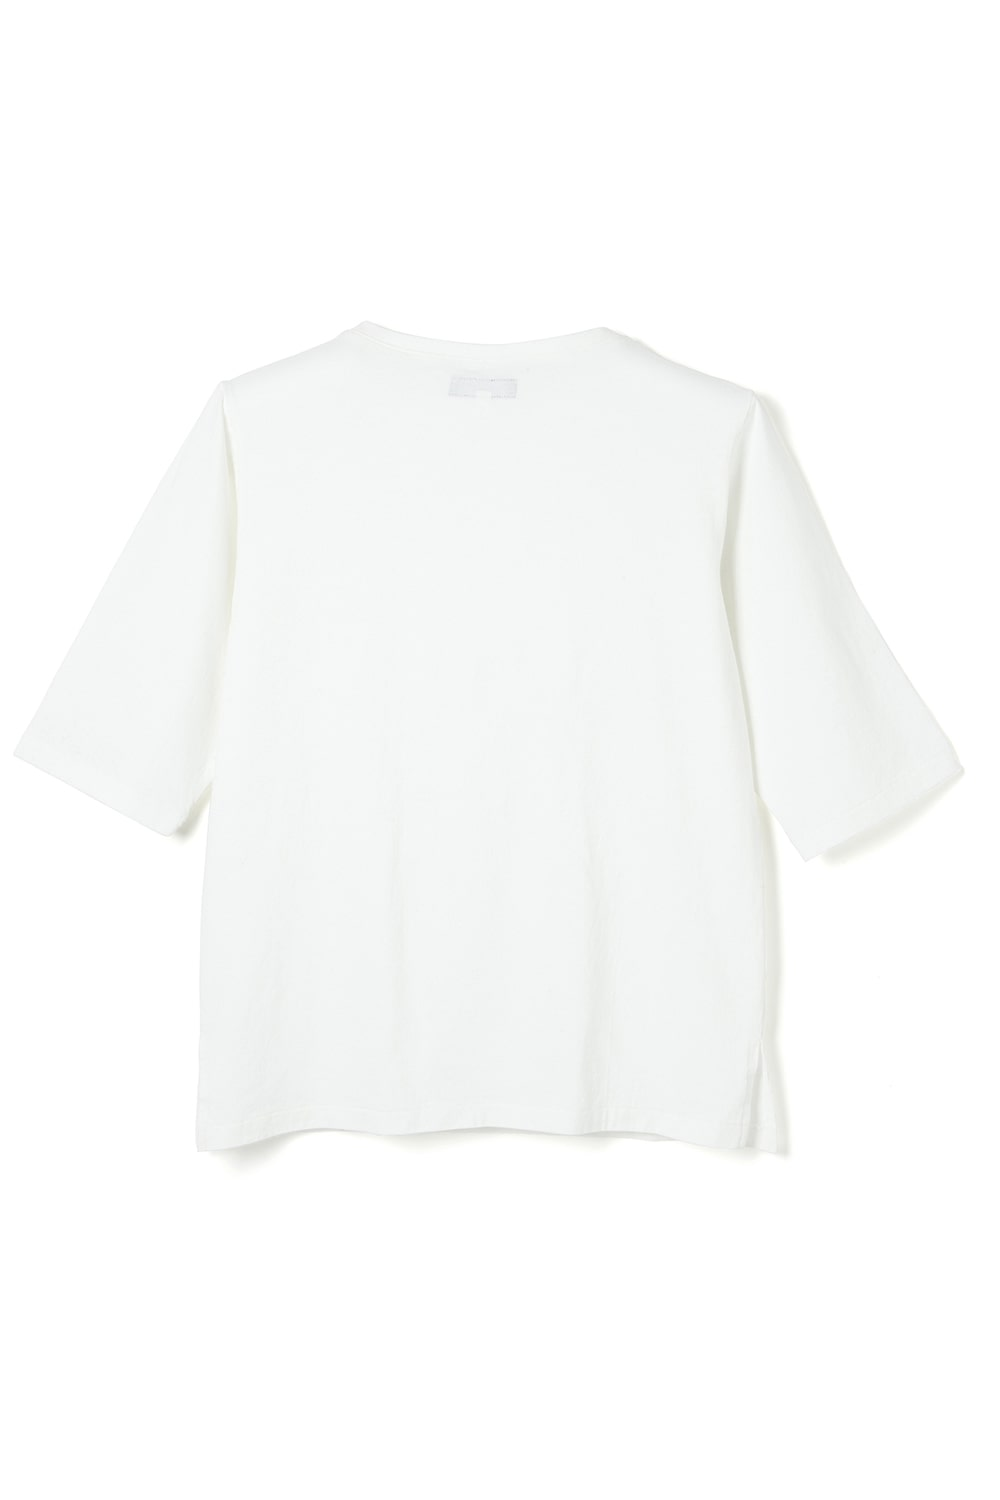 CK Boat Neck Tee -White-